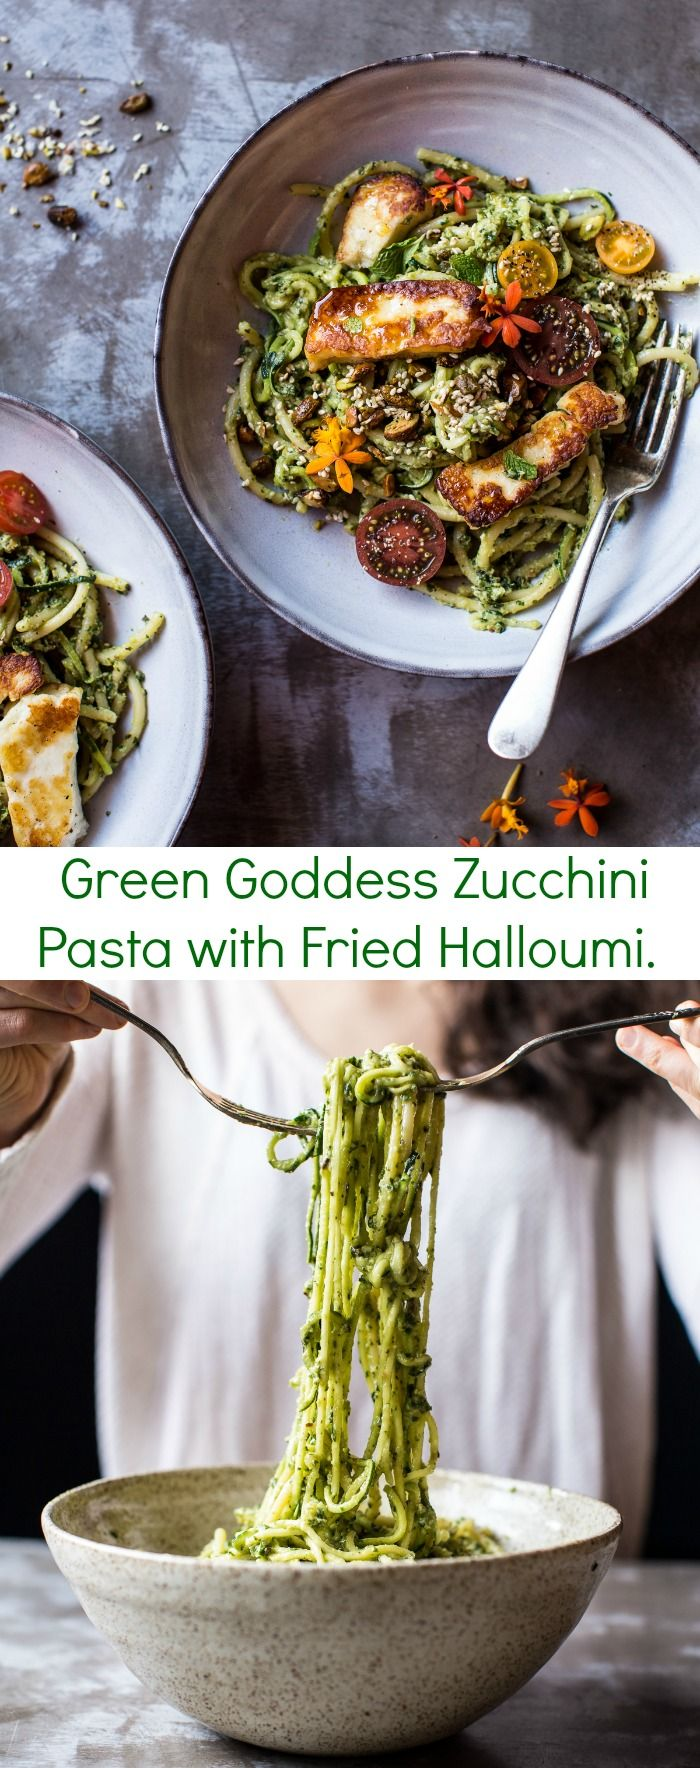 Green Goddess Zucchini Pasta with Fried Halloumi | halfbakedharvest.com @hbharvest. THAT AVOCADO PESTO